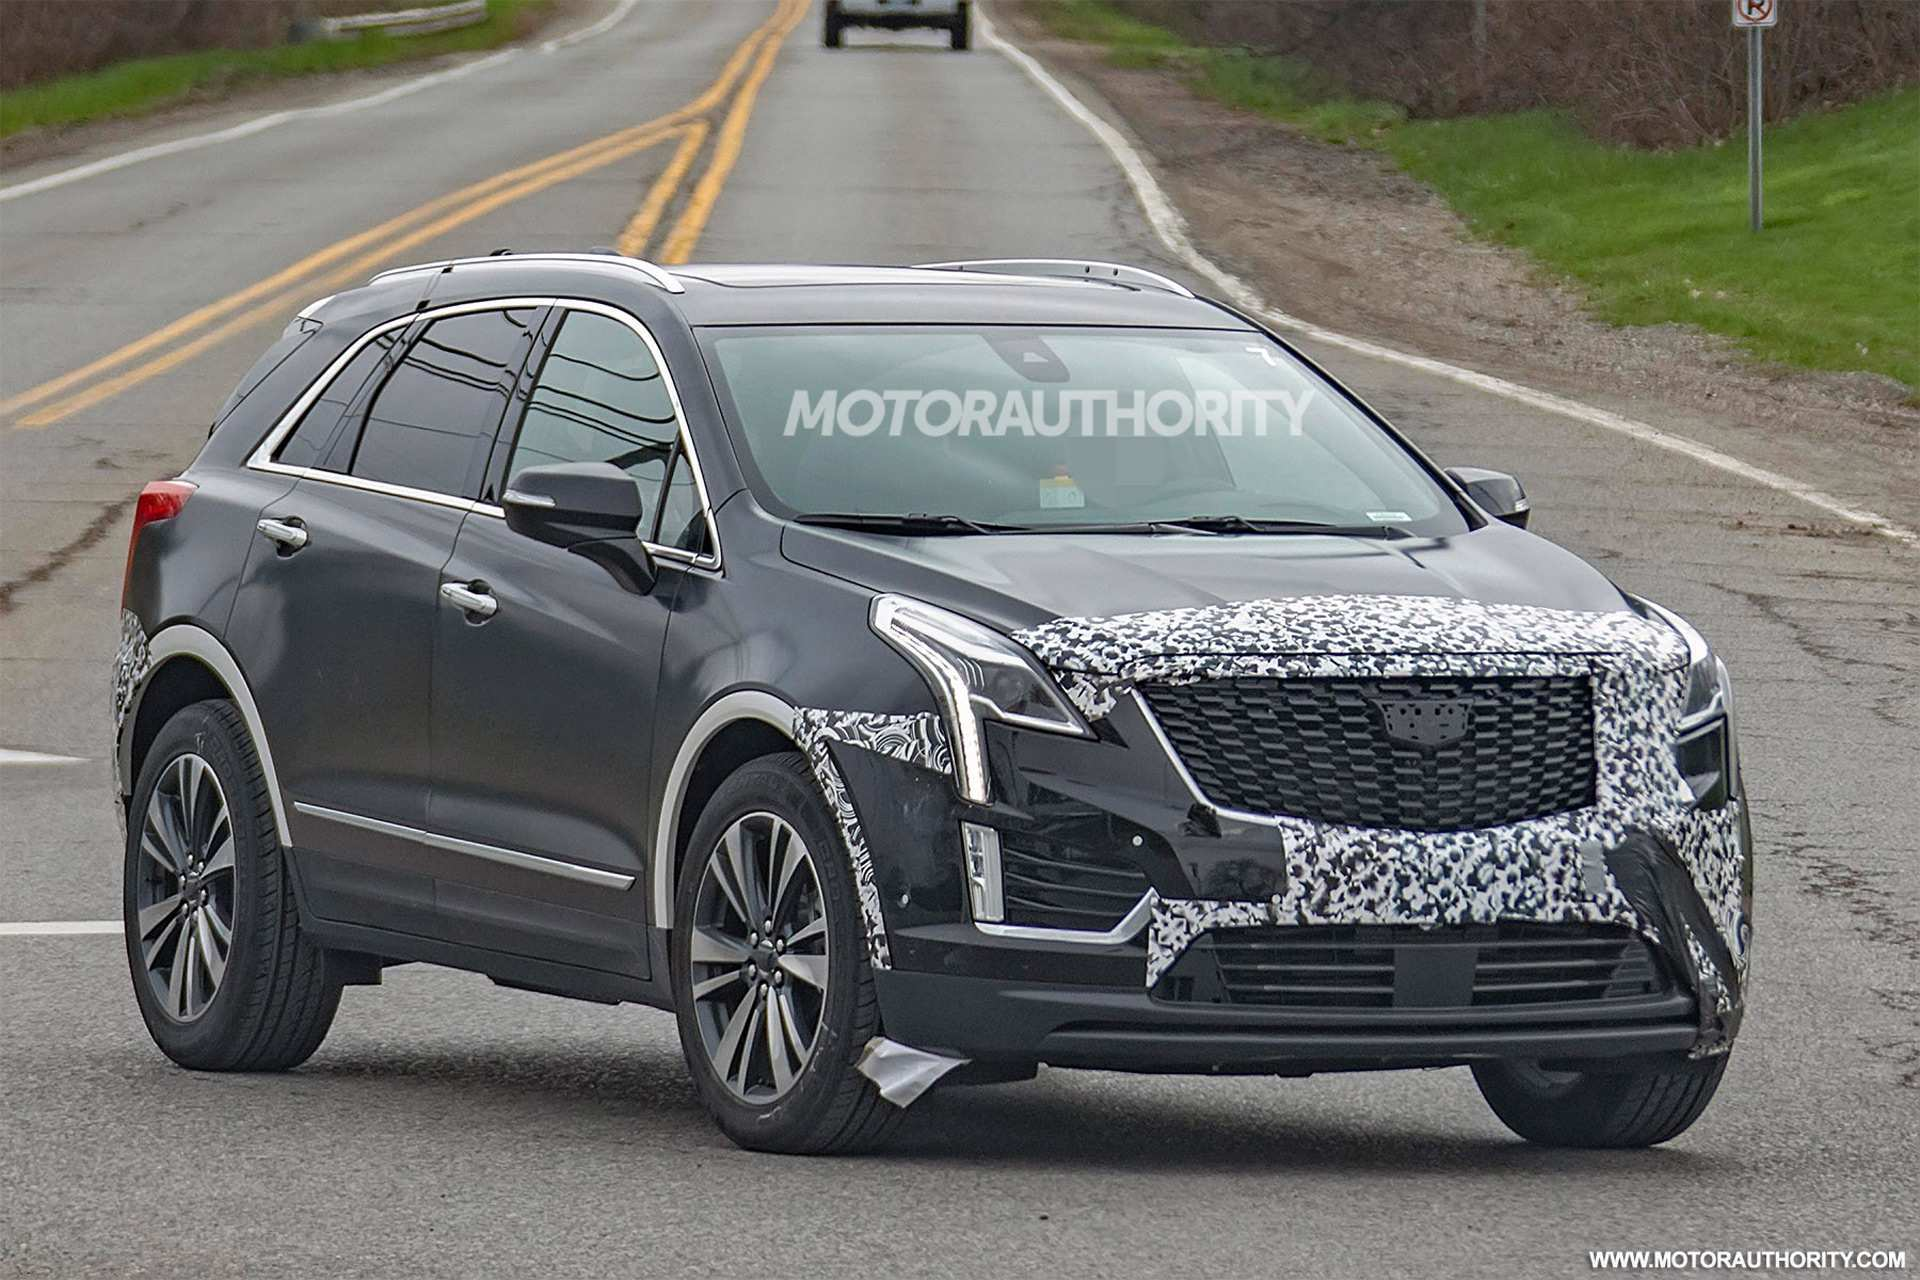 29 New Cadillac Hybrid Suv 2020 Price and Review by Cadillac Hybrid Suv 2020